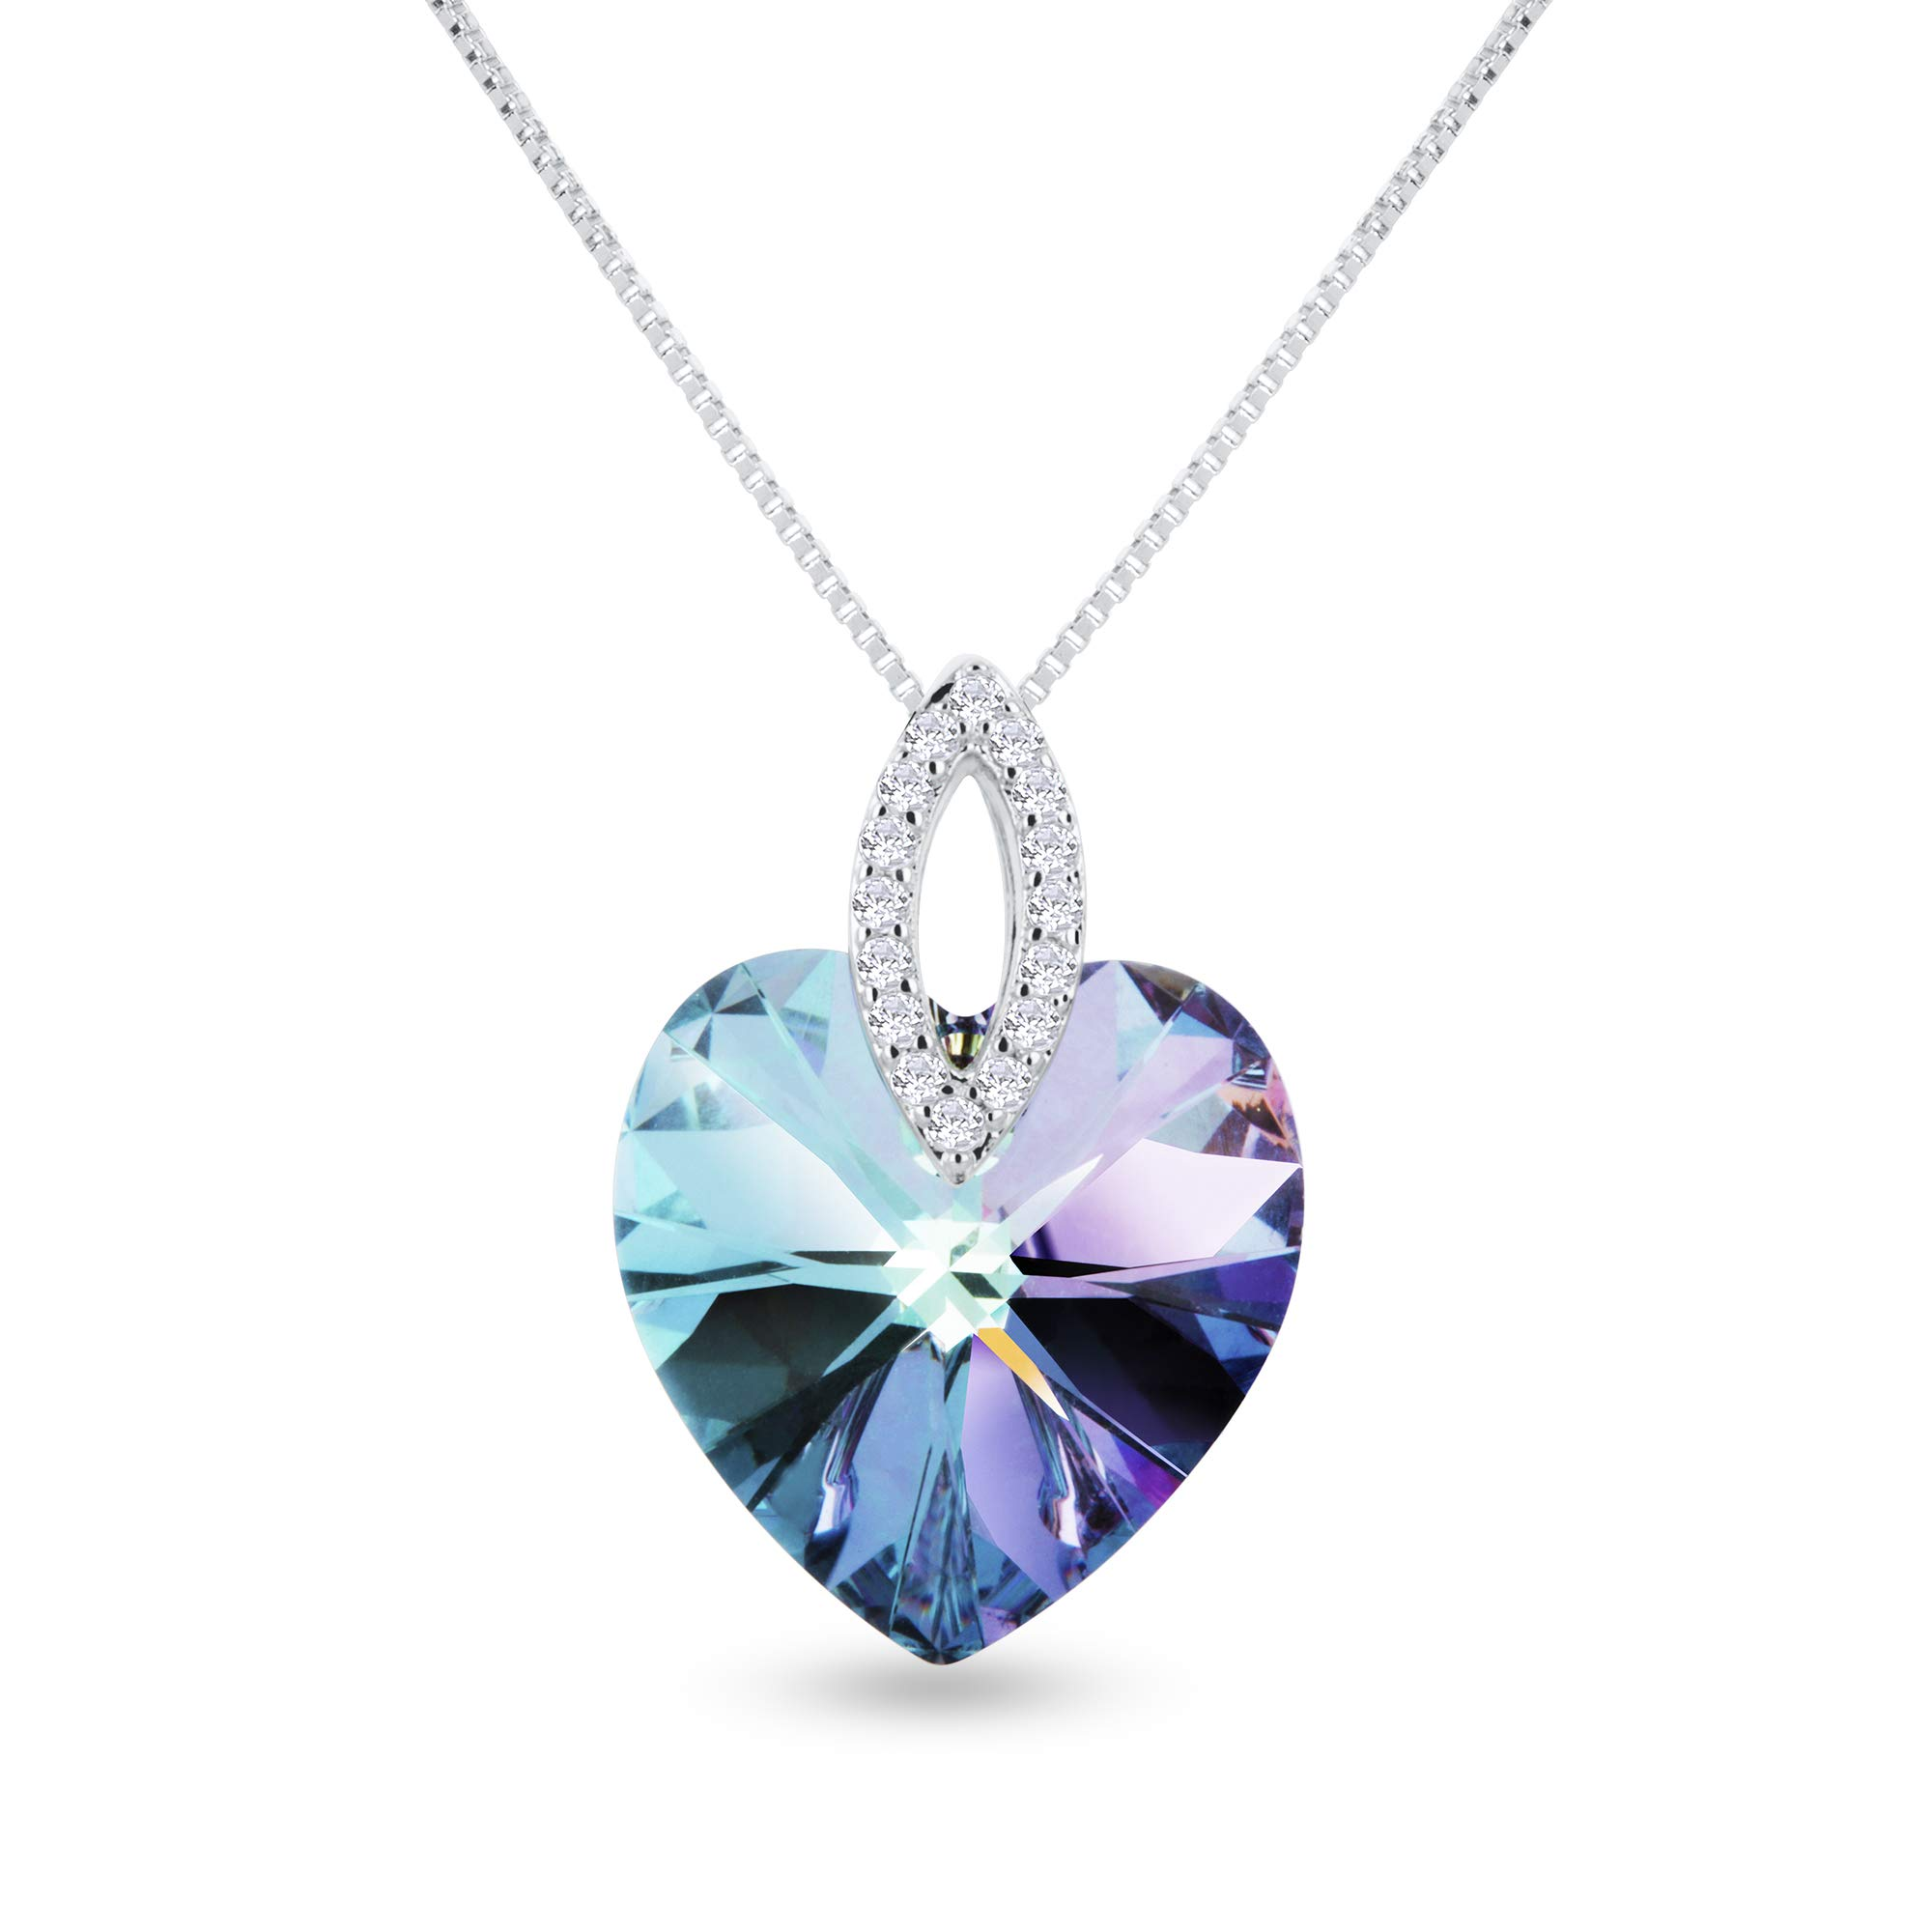 """Rosny Jewelry """"Rainbow Heart"""" Necklace Made with Swarovski Crystals (Rhodium Plated, 17"""" with 3"""" Extension, Lobster-Claw Clasp)"""